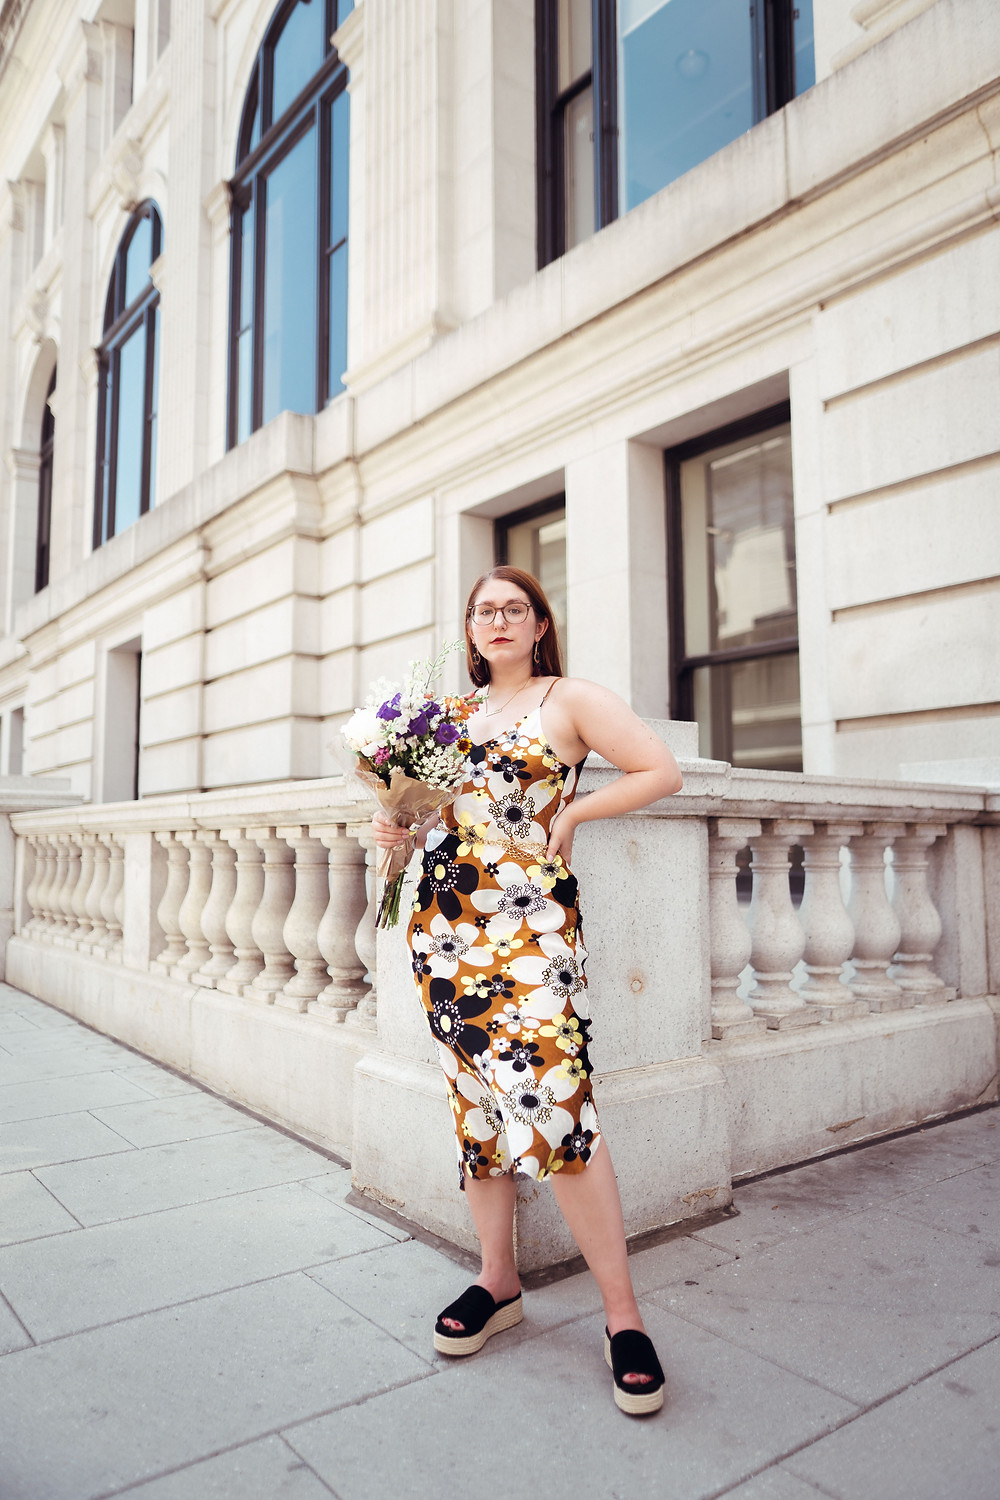 Taylor wearing patterned slip dress and holding flowers outside a building in Washington, DC.